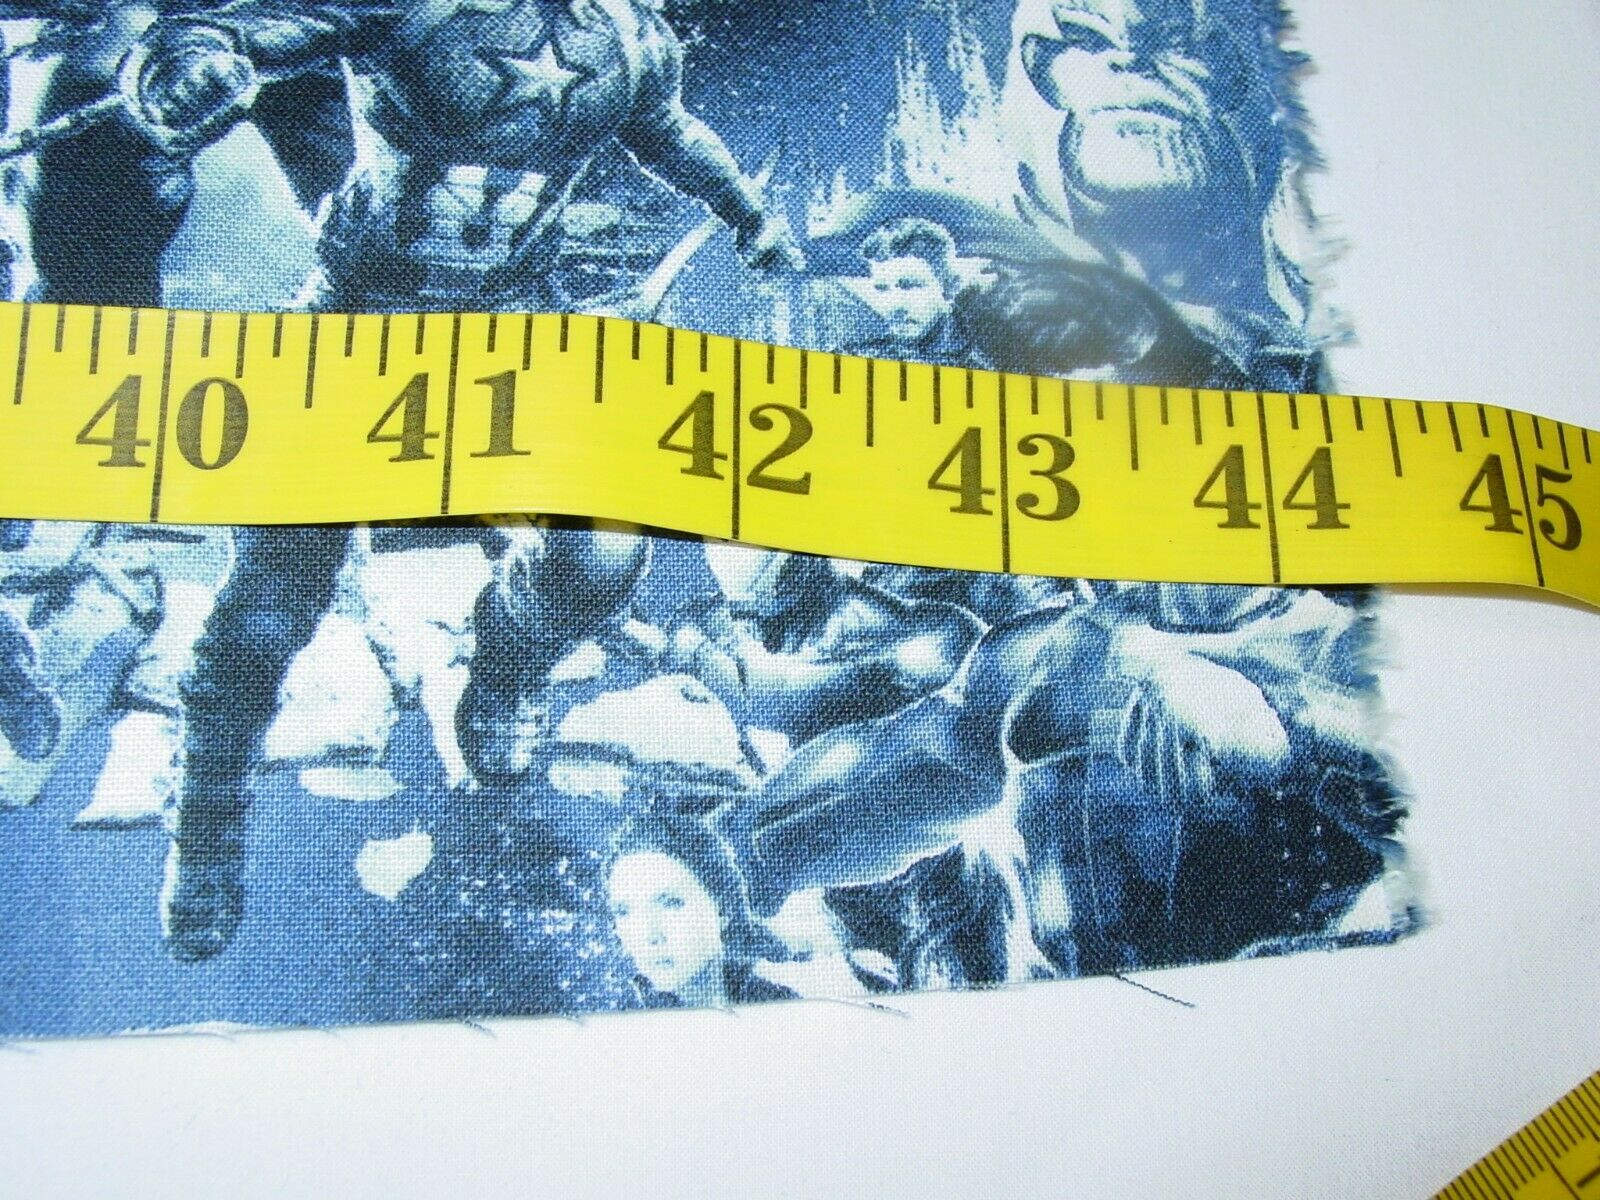 MARVEL CHARACTERS AVENGERS 100 COTTON FABRIC REMNANT LENGHT 34 X WIDTH 43  - $12.50